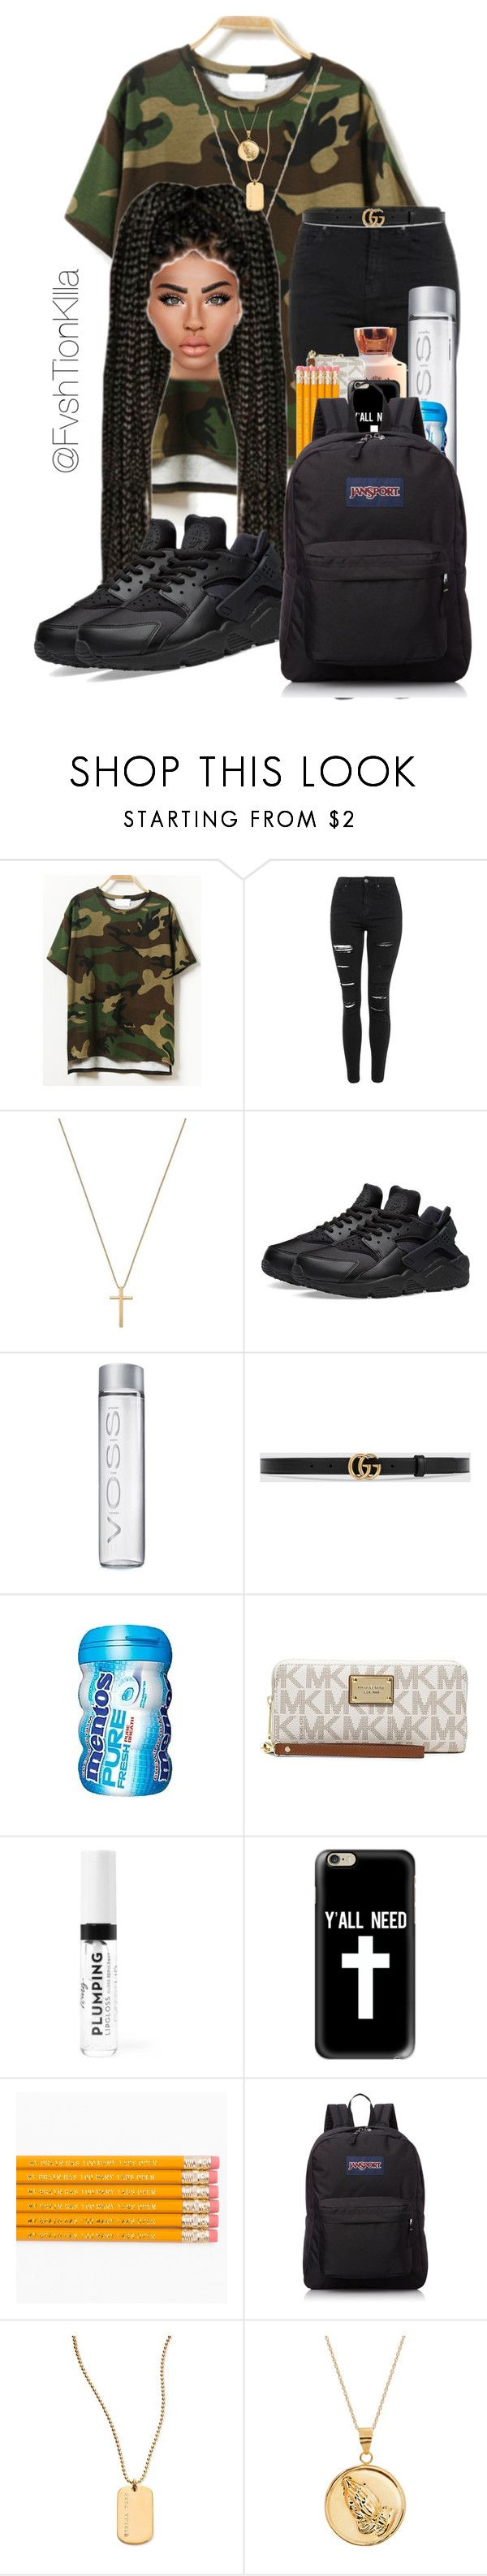 """""""Kanye West~Saint Pablo"""" by fvshtionkilla ❤ liked on Polyvore featuring Topshop, Gucci, NIKE, MICHAEL Michael Kors, Casetify, JanSport and Trina Turk"""